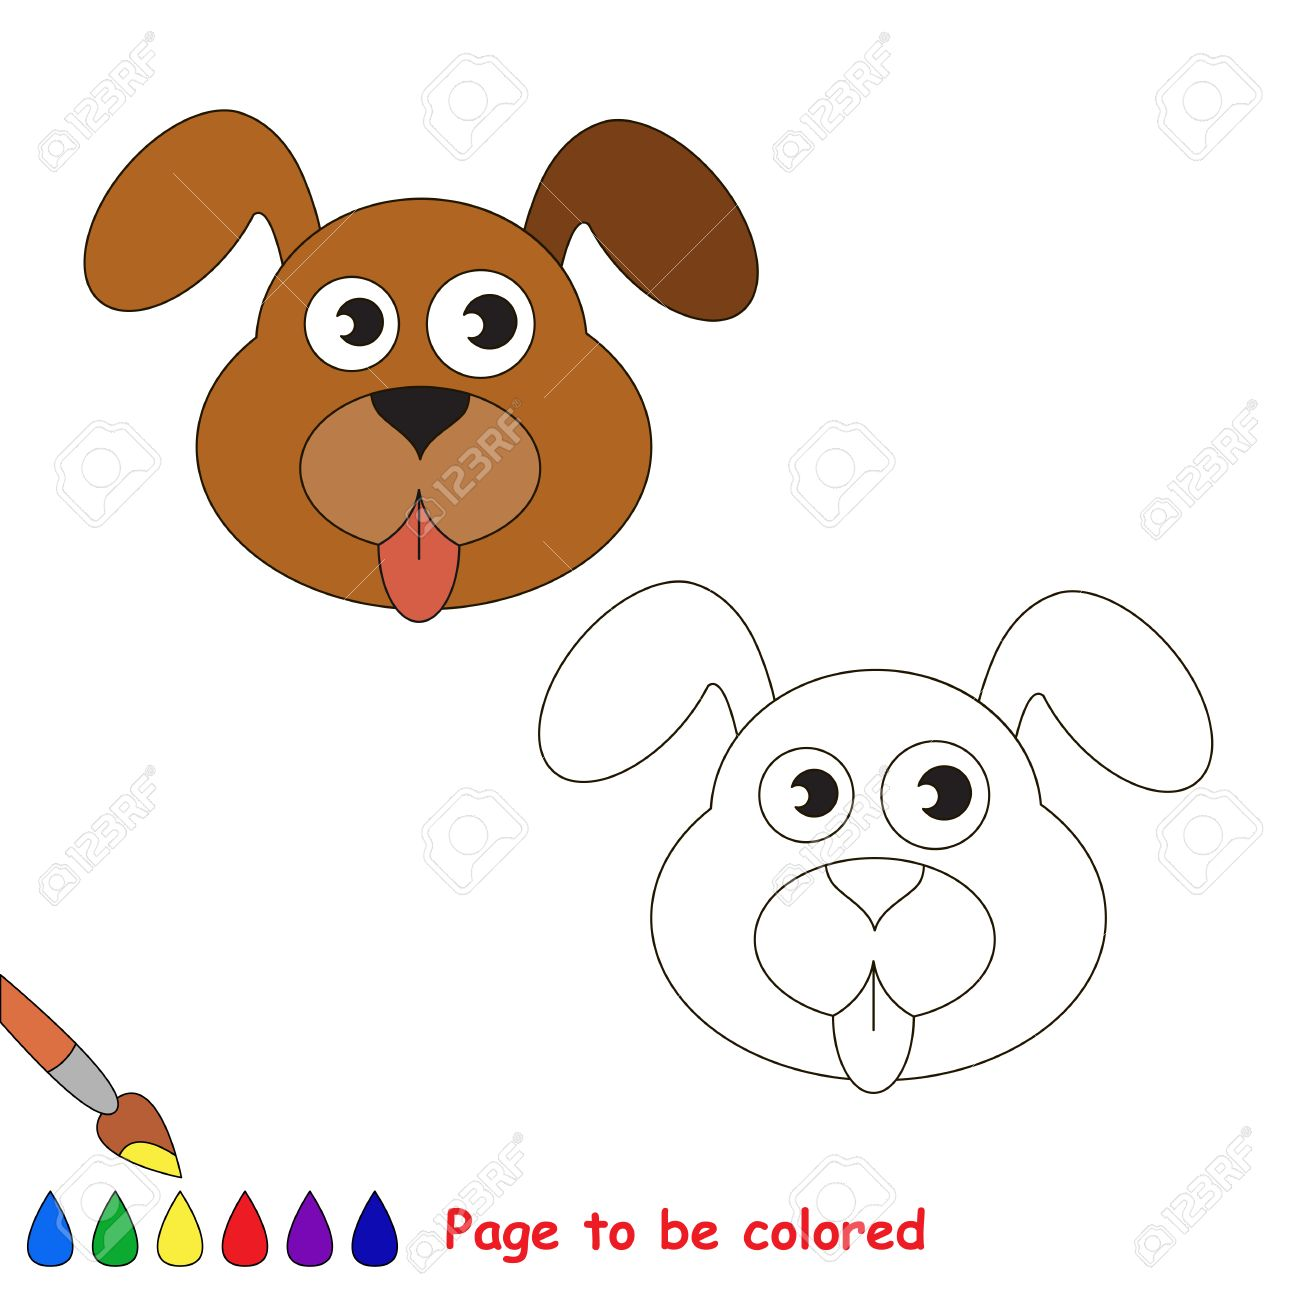 Dog Face To Be Colored The Coloring Book For Preschool Kids With Easy Educational Gaming